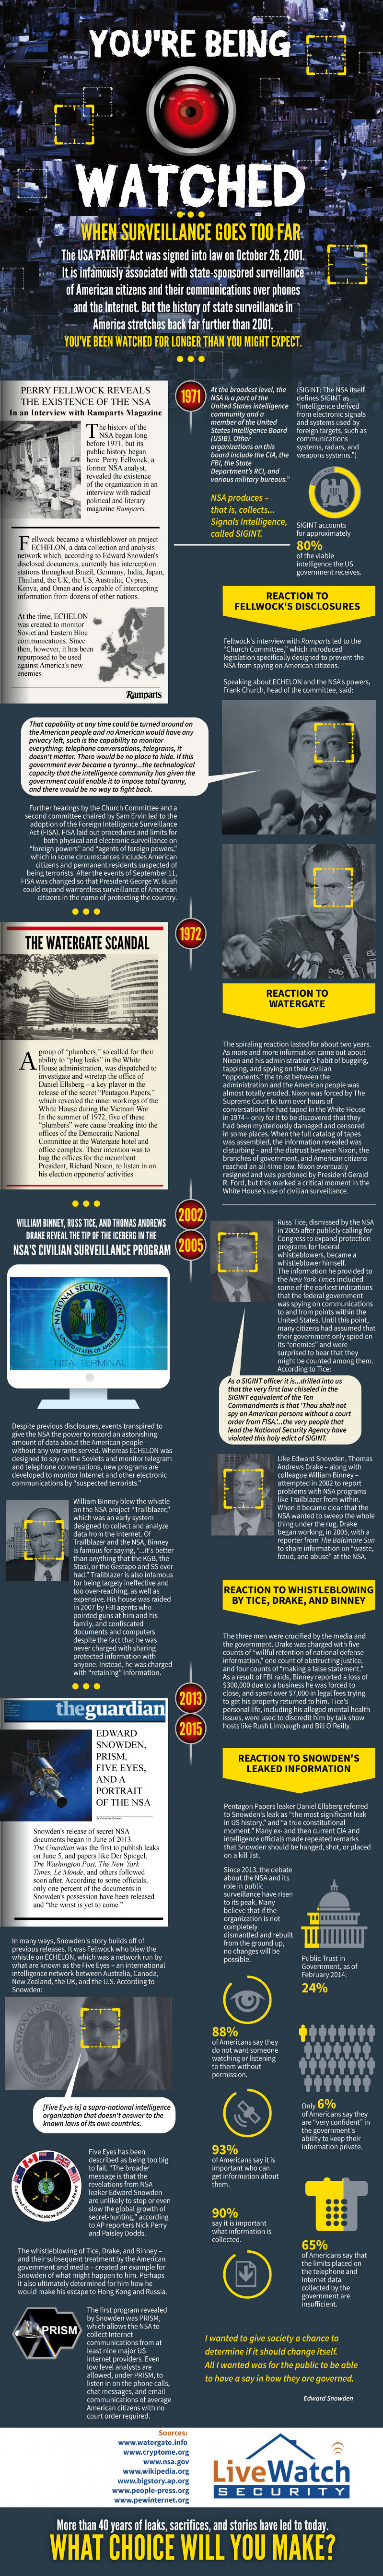 You're Being Watched: When Surveillance Goes Too Far Infographic